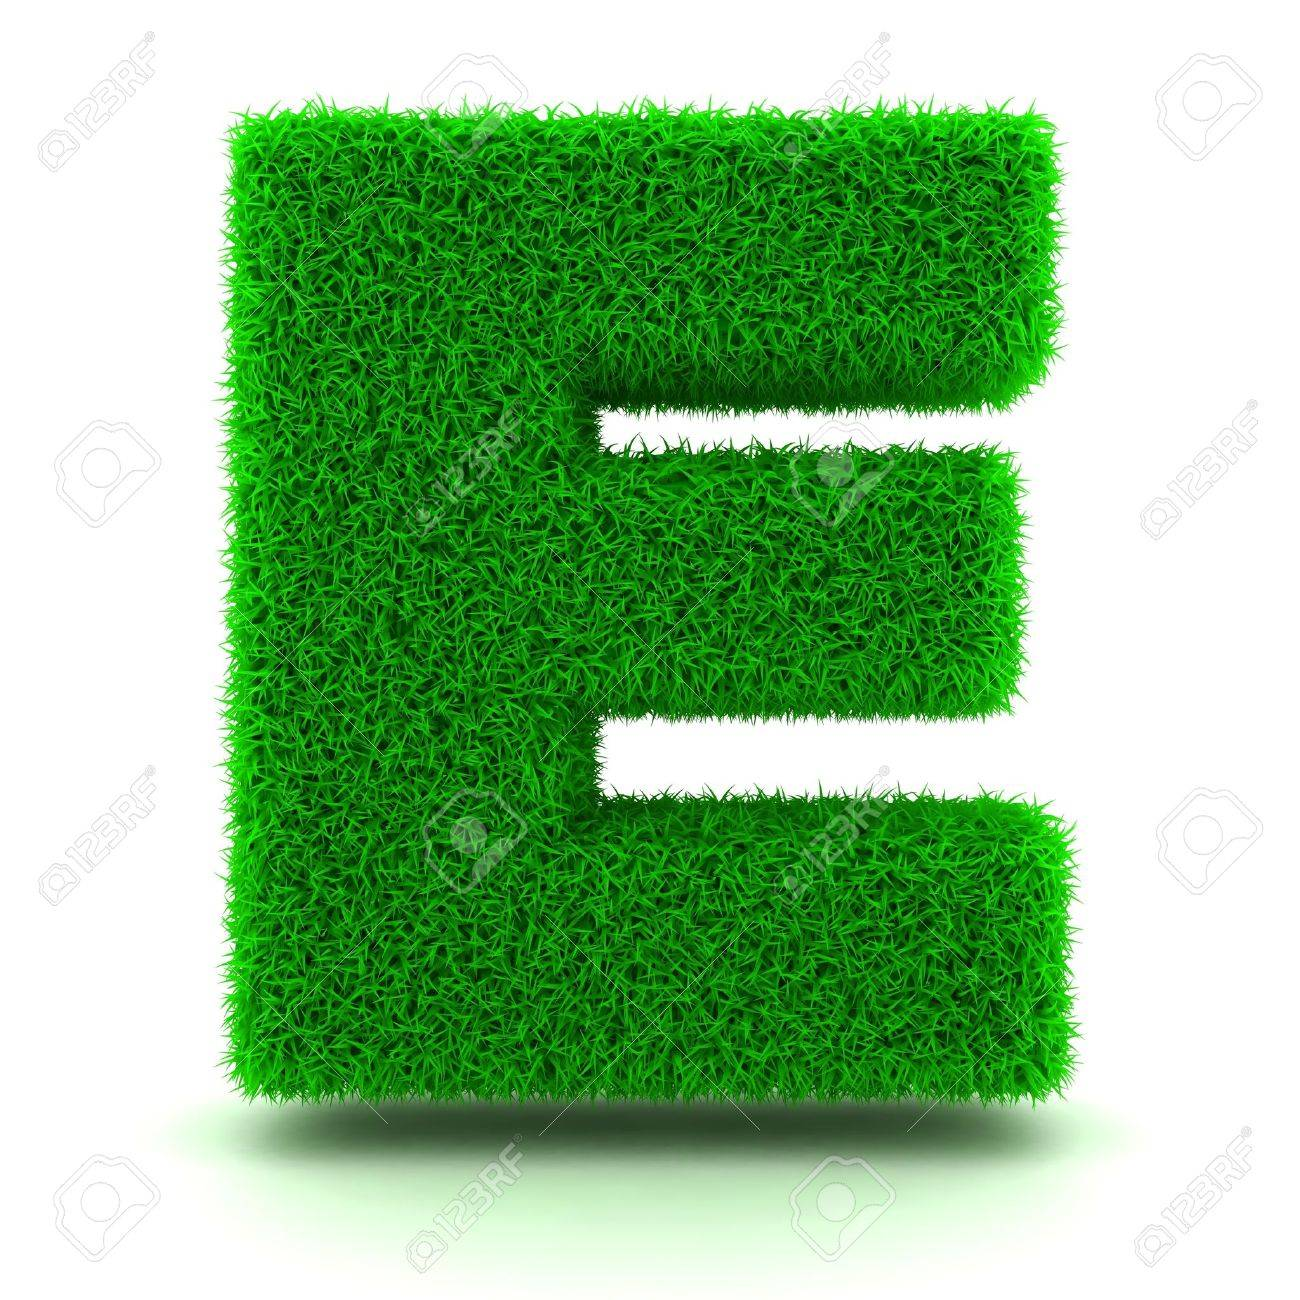 3D Green Grass Letter on White Background Stock Photo - 11875210